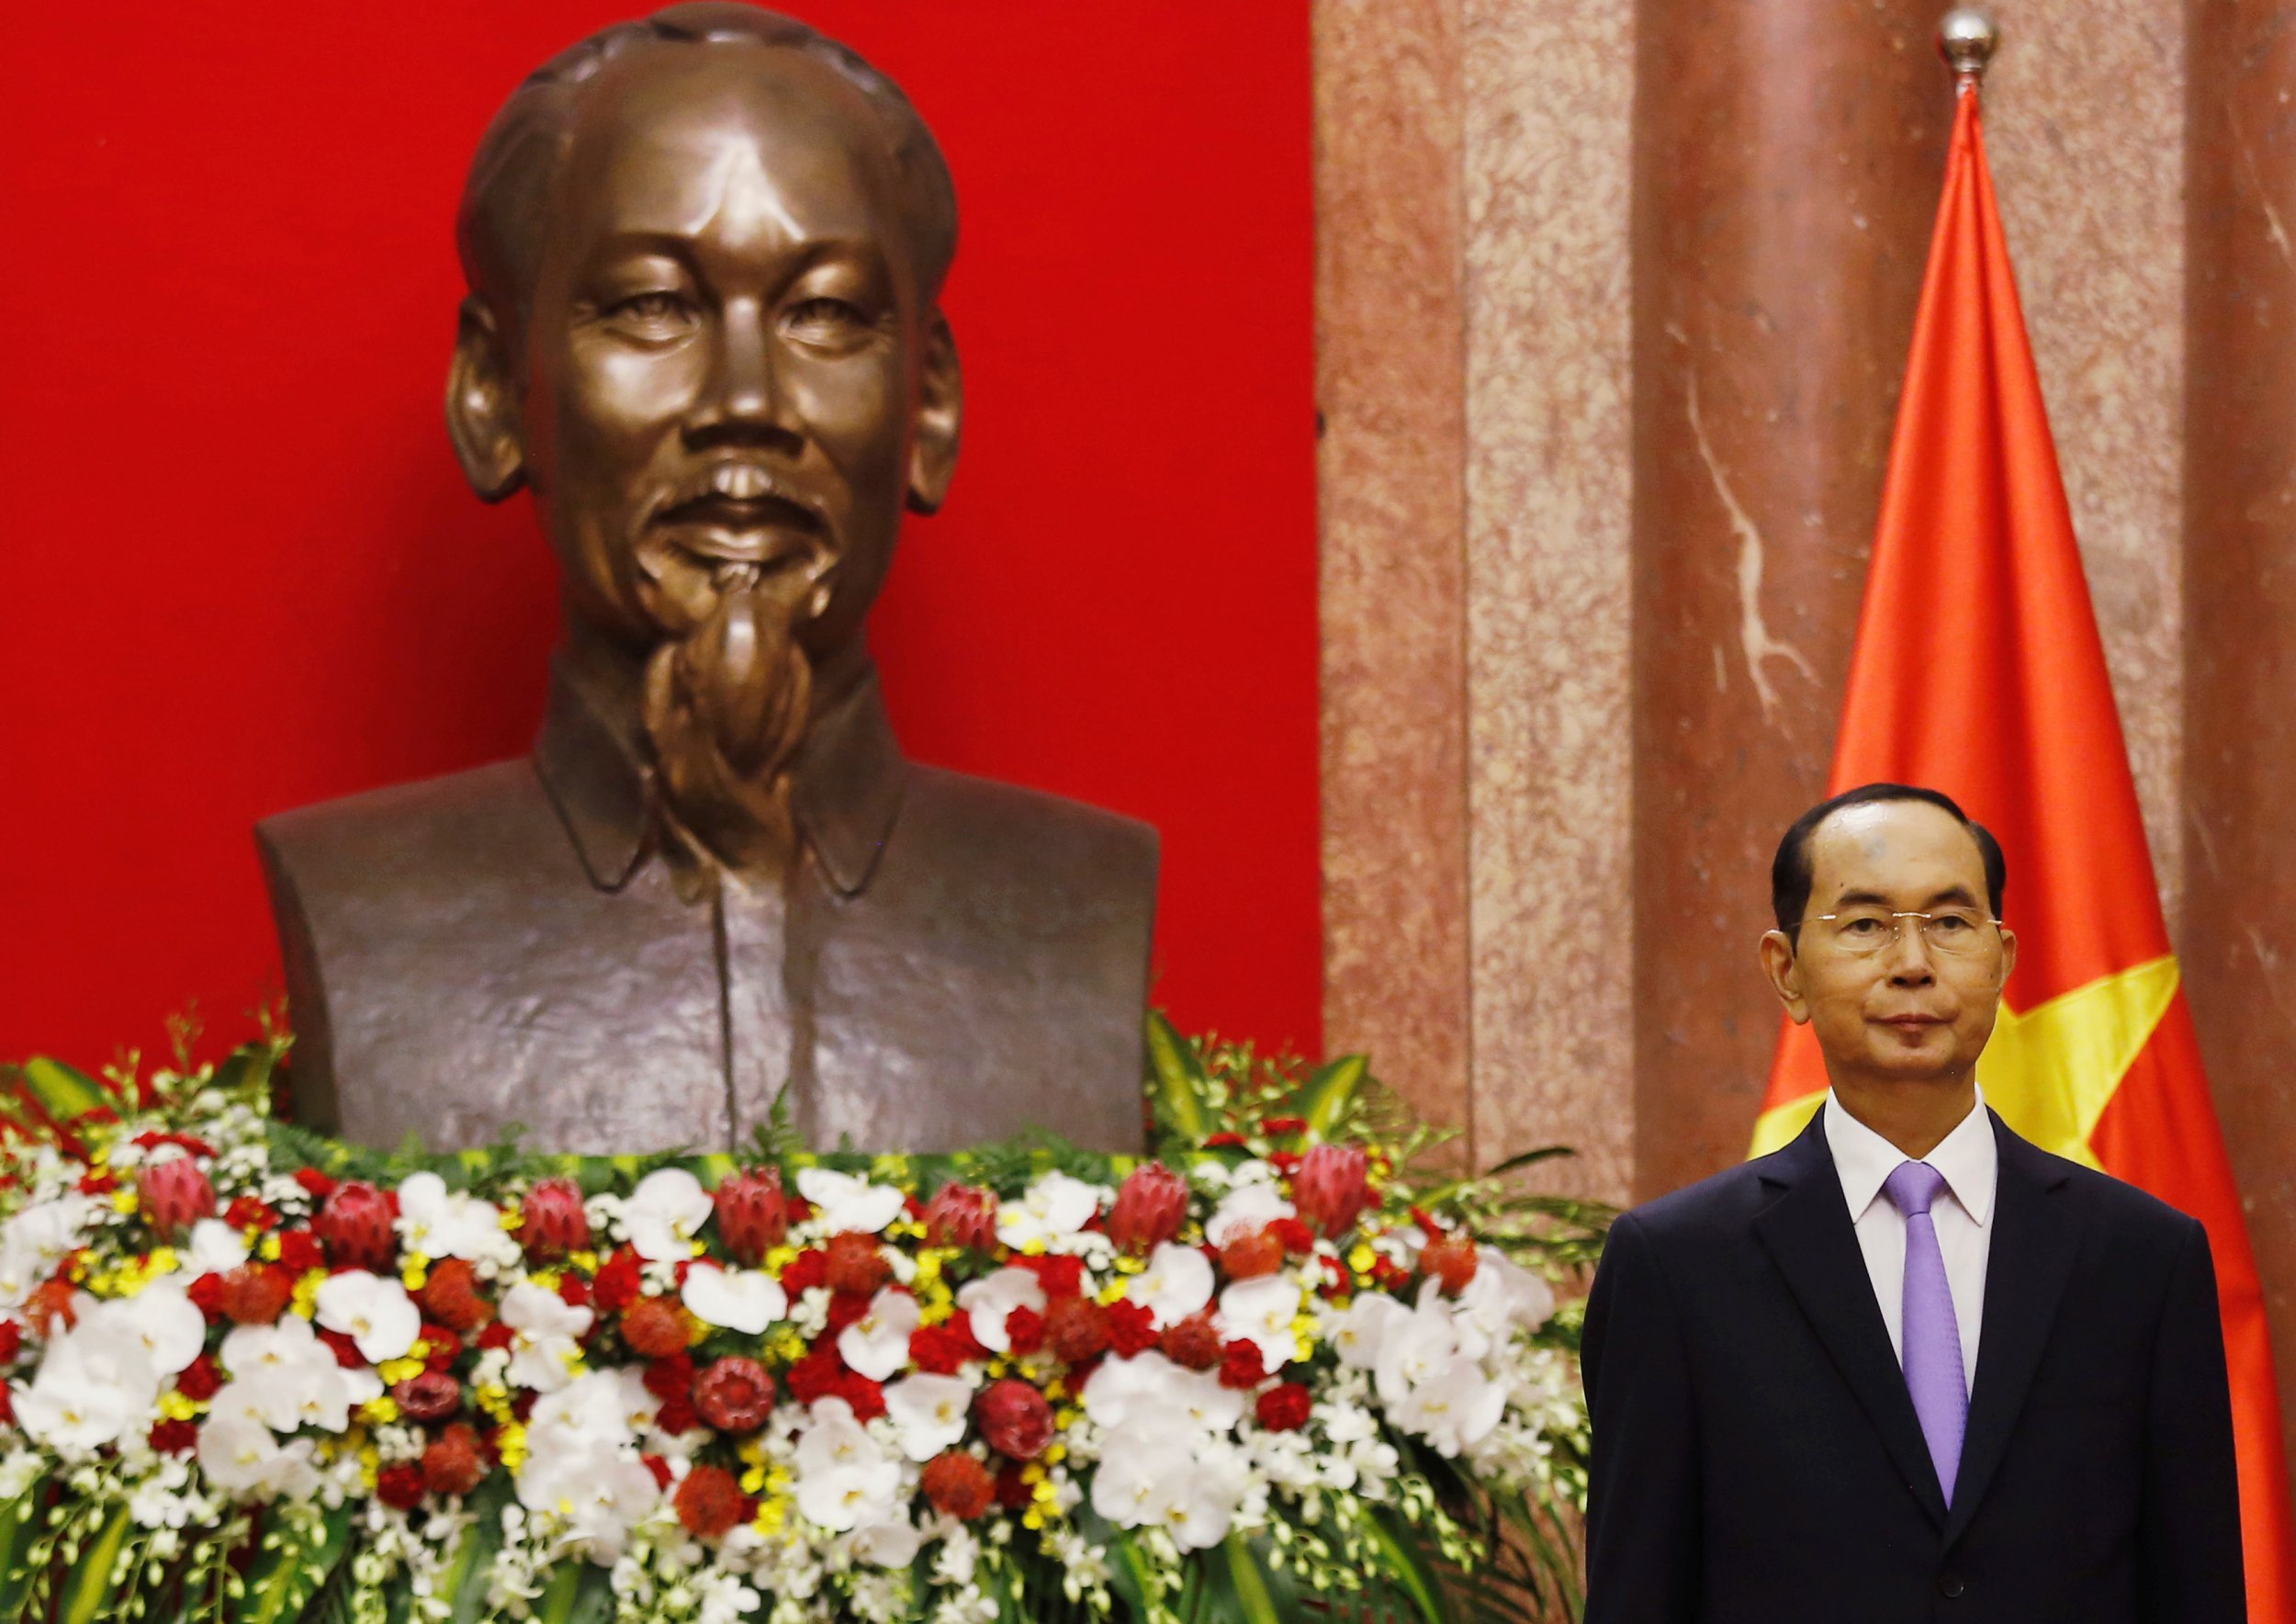 Vietnam's President Tran Dai Quang stands in front of a statue of Vietnamese revolutionary leader Ho Chi Minh at the Presidential Palace in Hanoi, Vietnam September 13, 2018. Image: Reuters/Kham